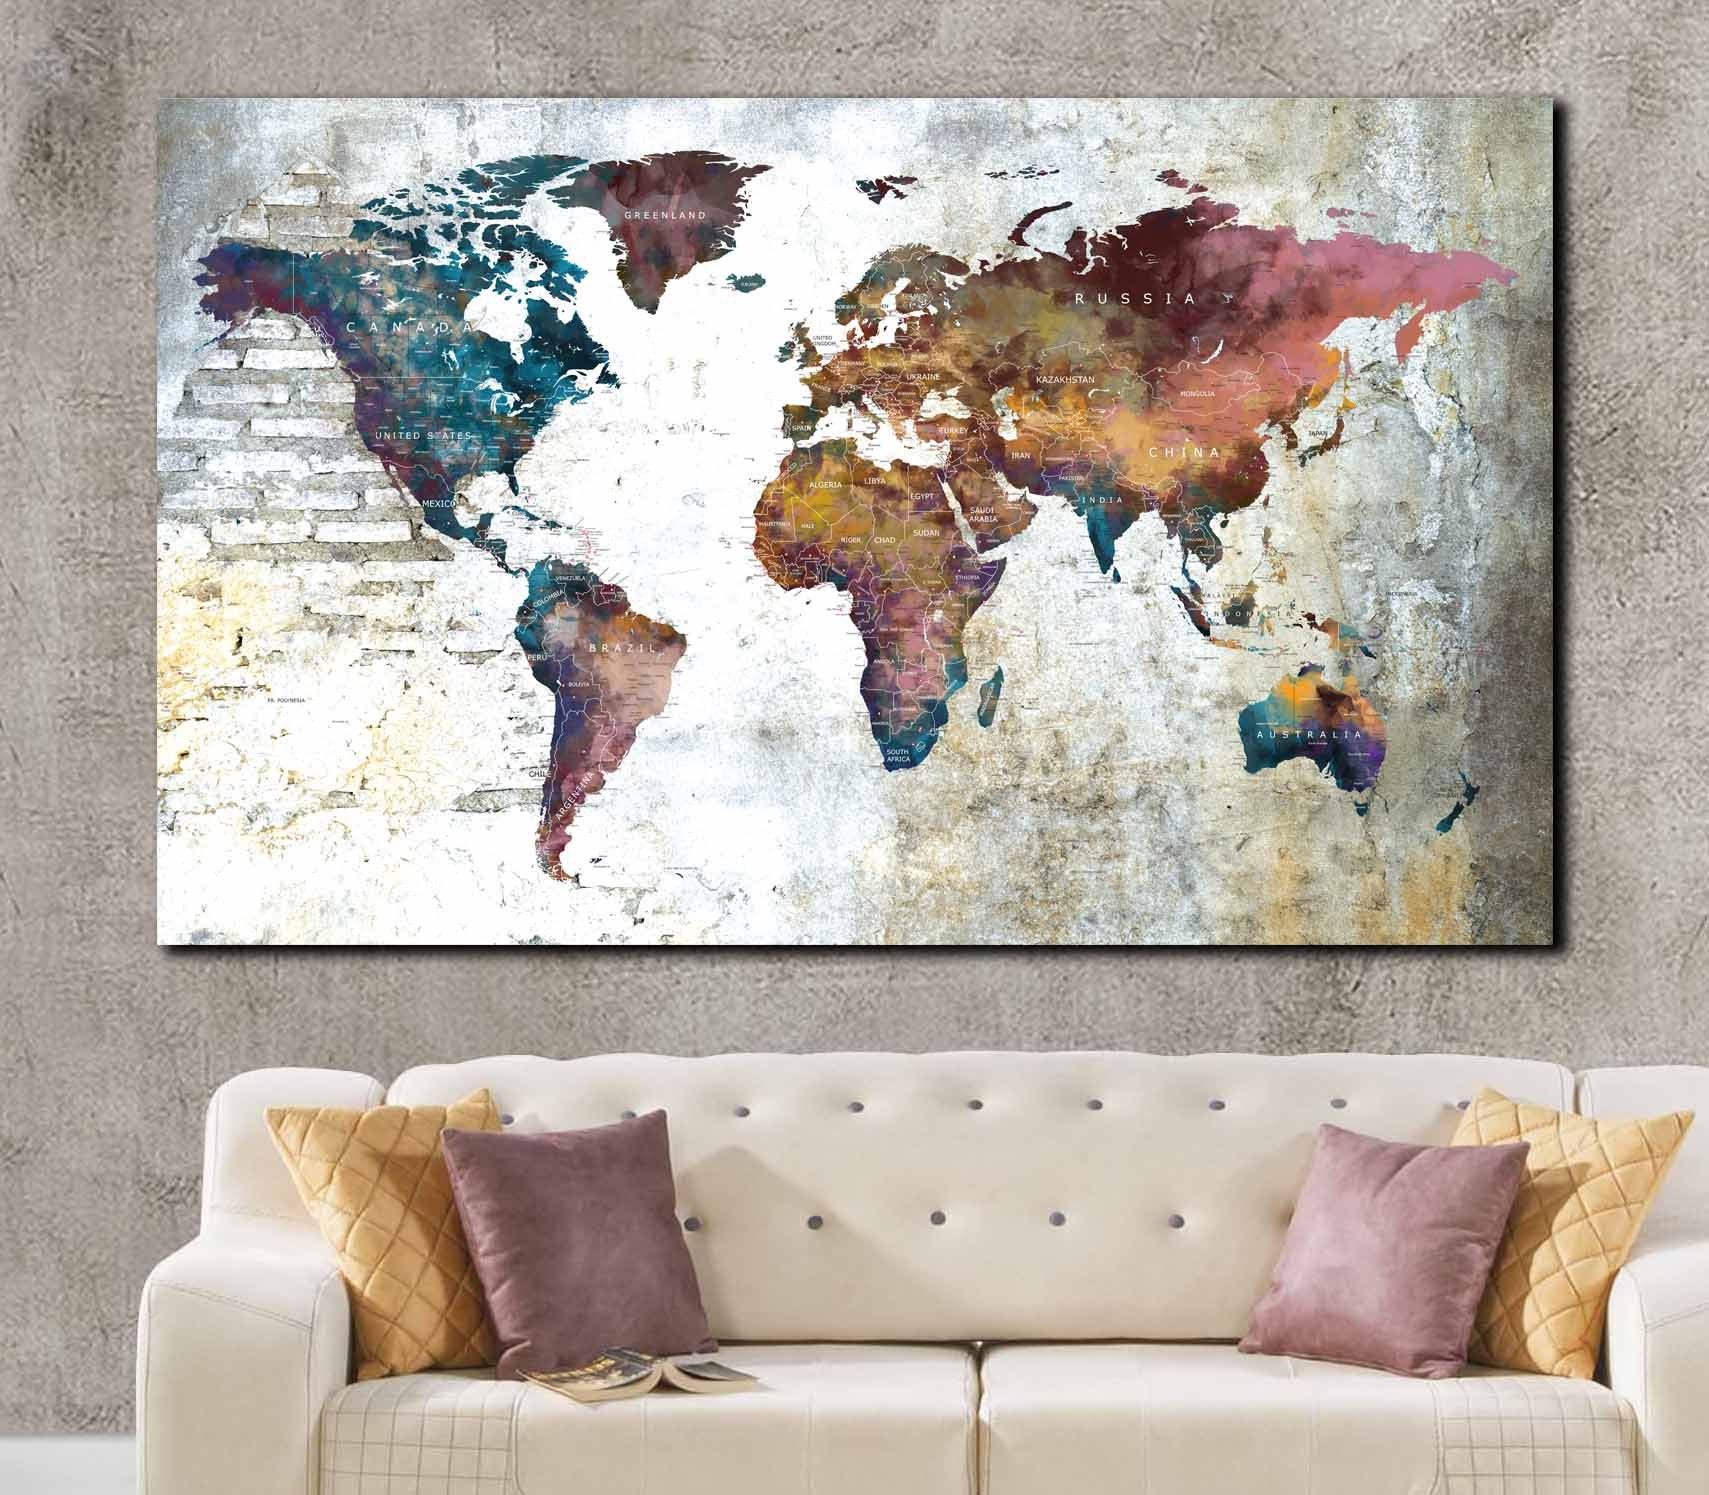 World map single panel canvas print ready to hang push pin map world map single panel canvas print ready to hang push pin map world map art world map print world map canvas world travel map map art gumiabroncs Choice Image